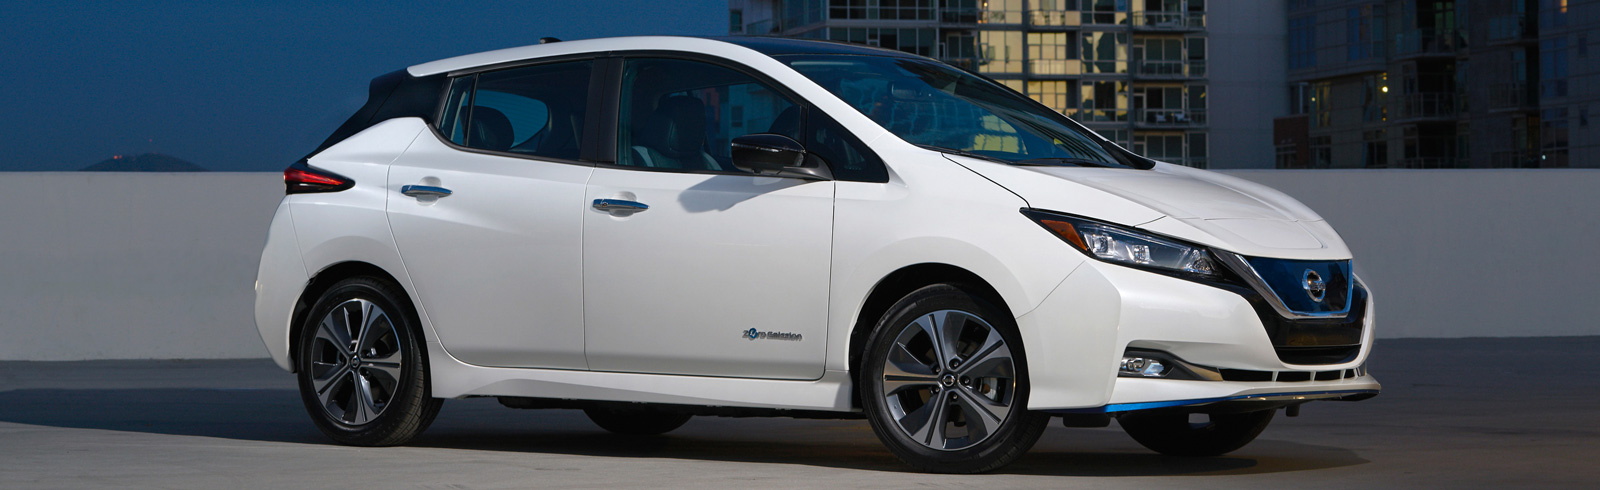 Nissan Leaf e+ a.k.a. Nissan Leaf Plus US pricing is unveiled